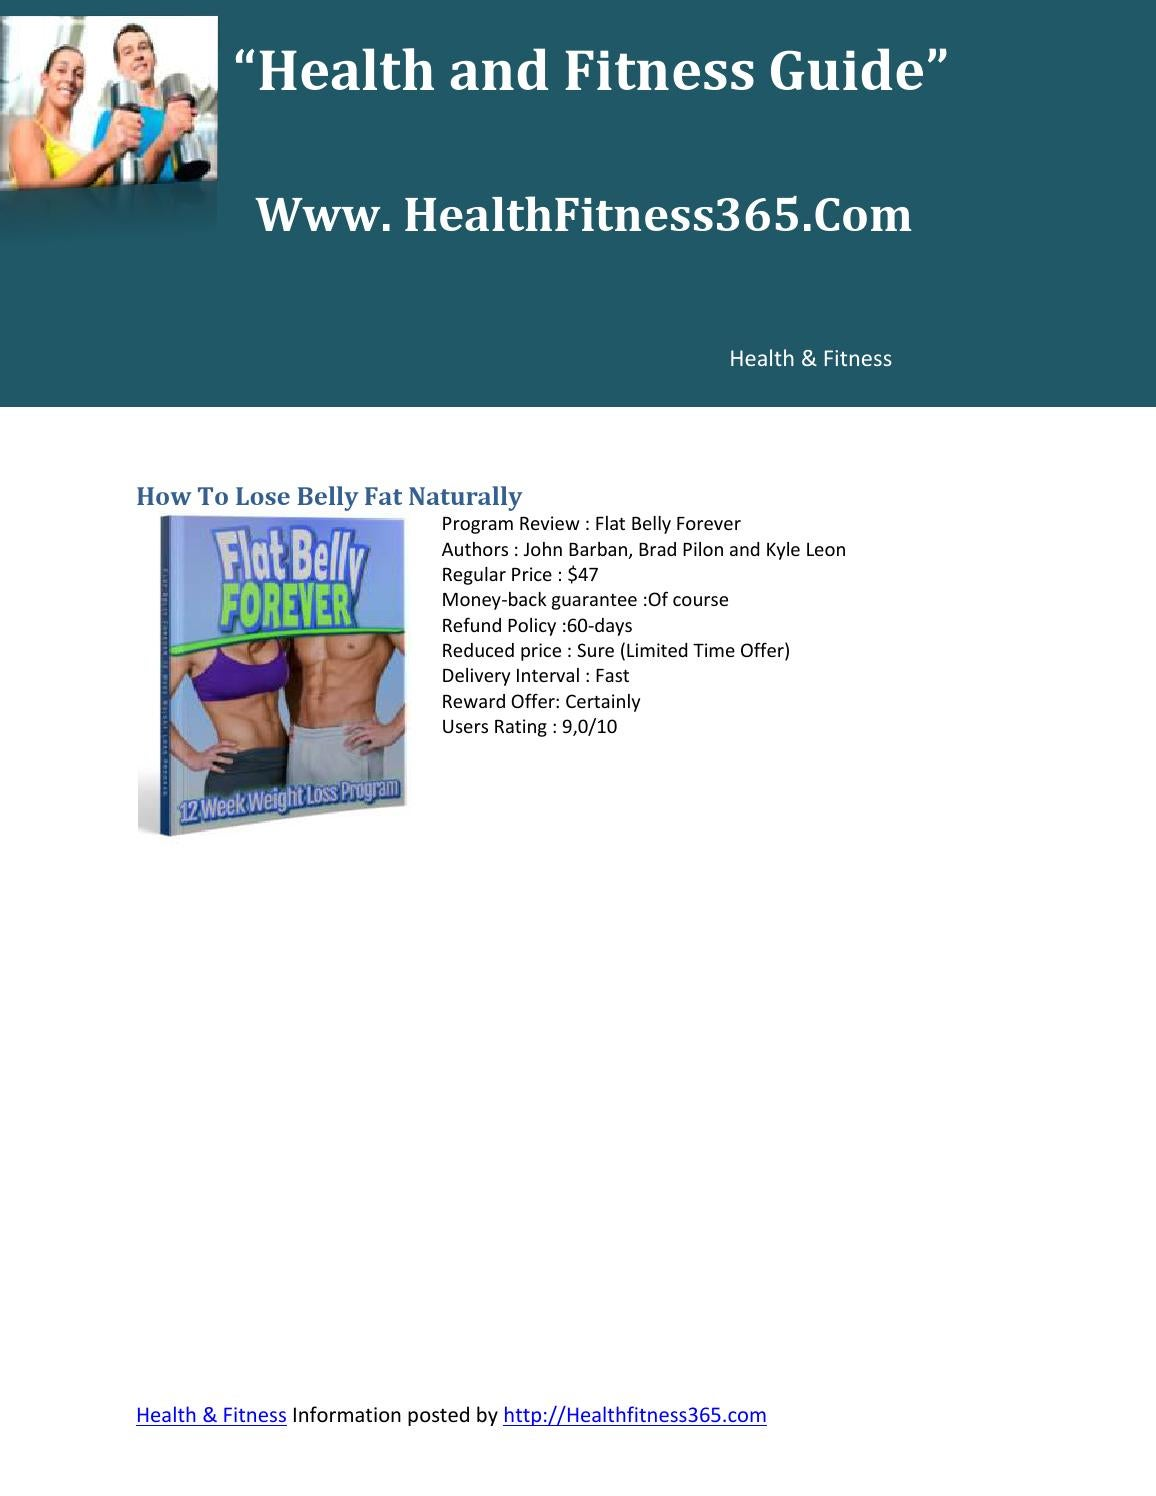 How To Lose Belly Fat Naturally By Groupproduct Issuu